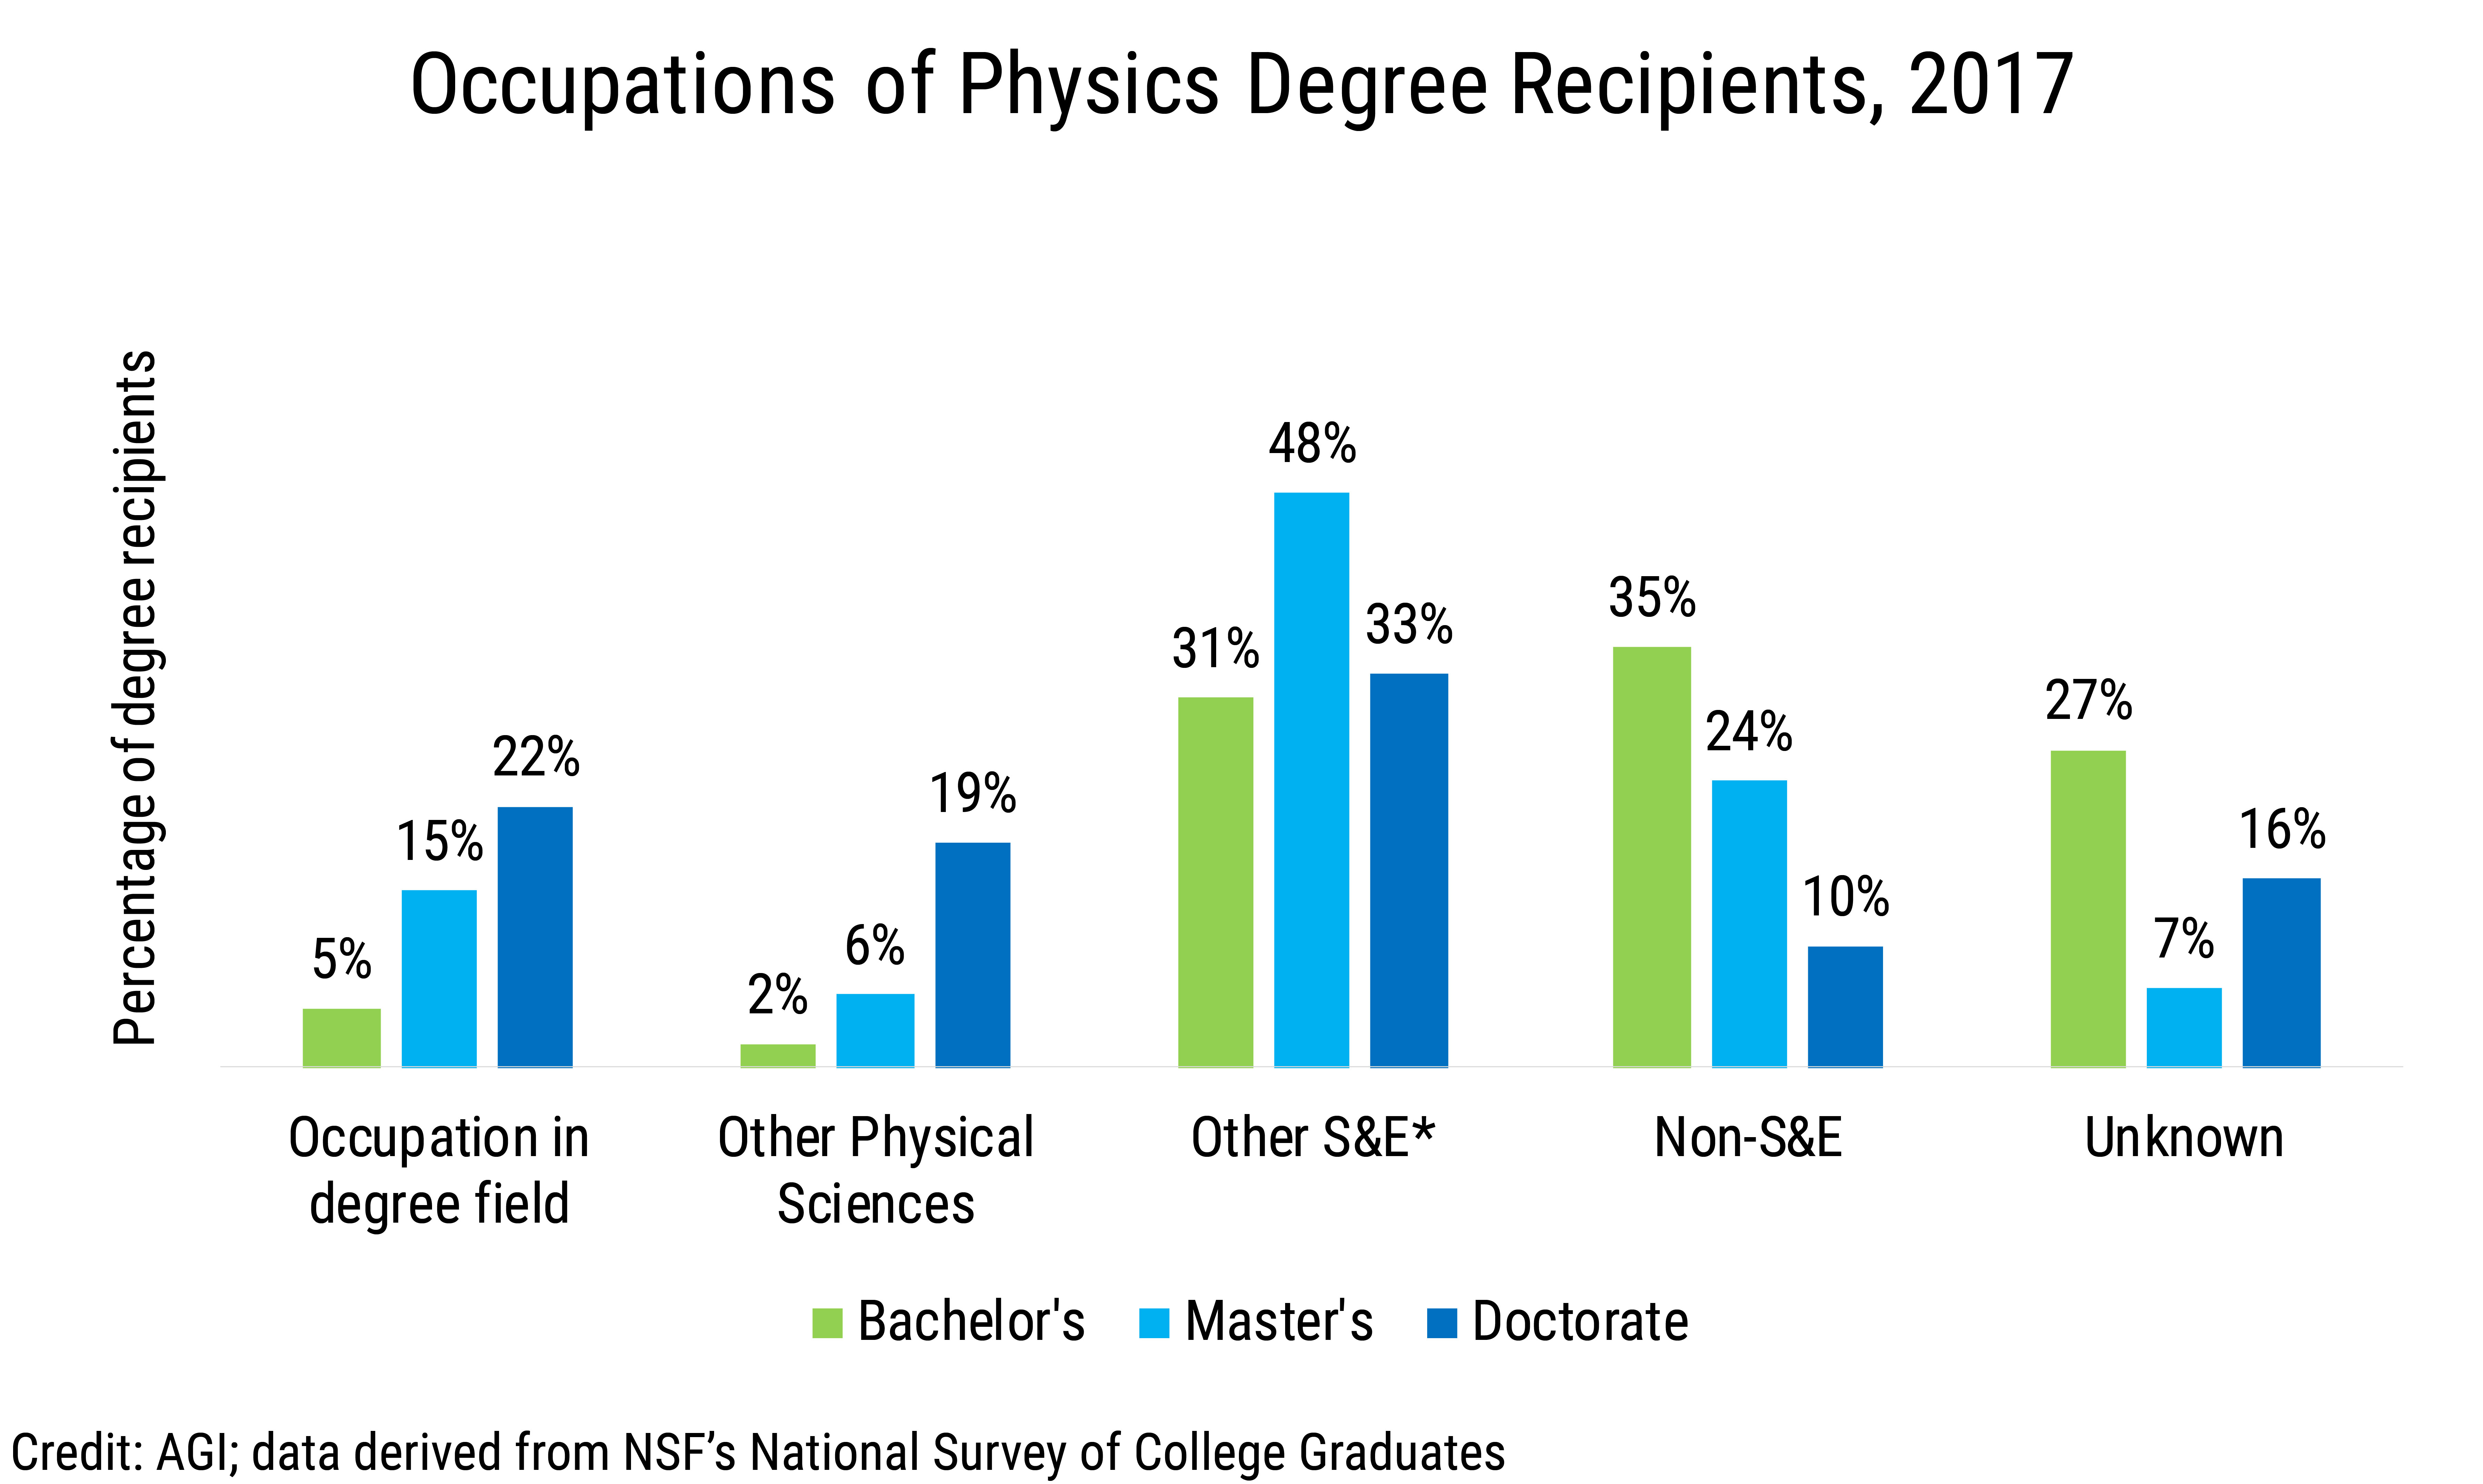 Data Brief 2019-013 chart03: Occupations of Physics Degree Recipients, 2017 (credit: AGI; data derived from NSF NSCG)